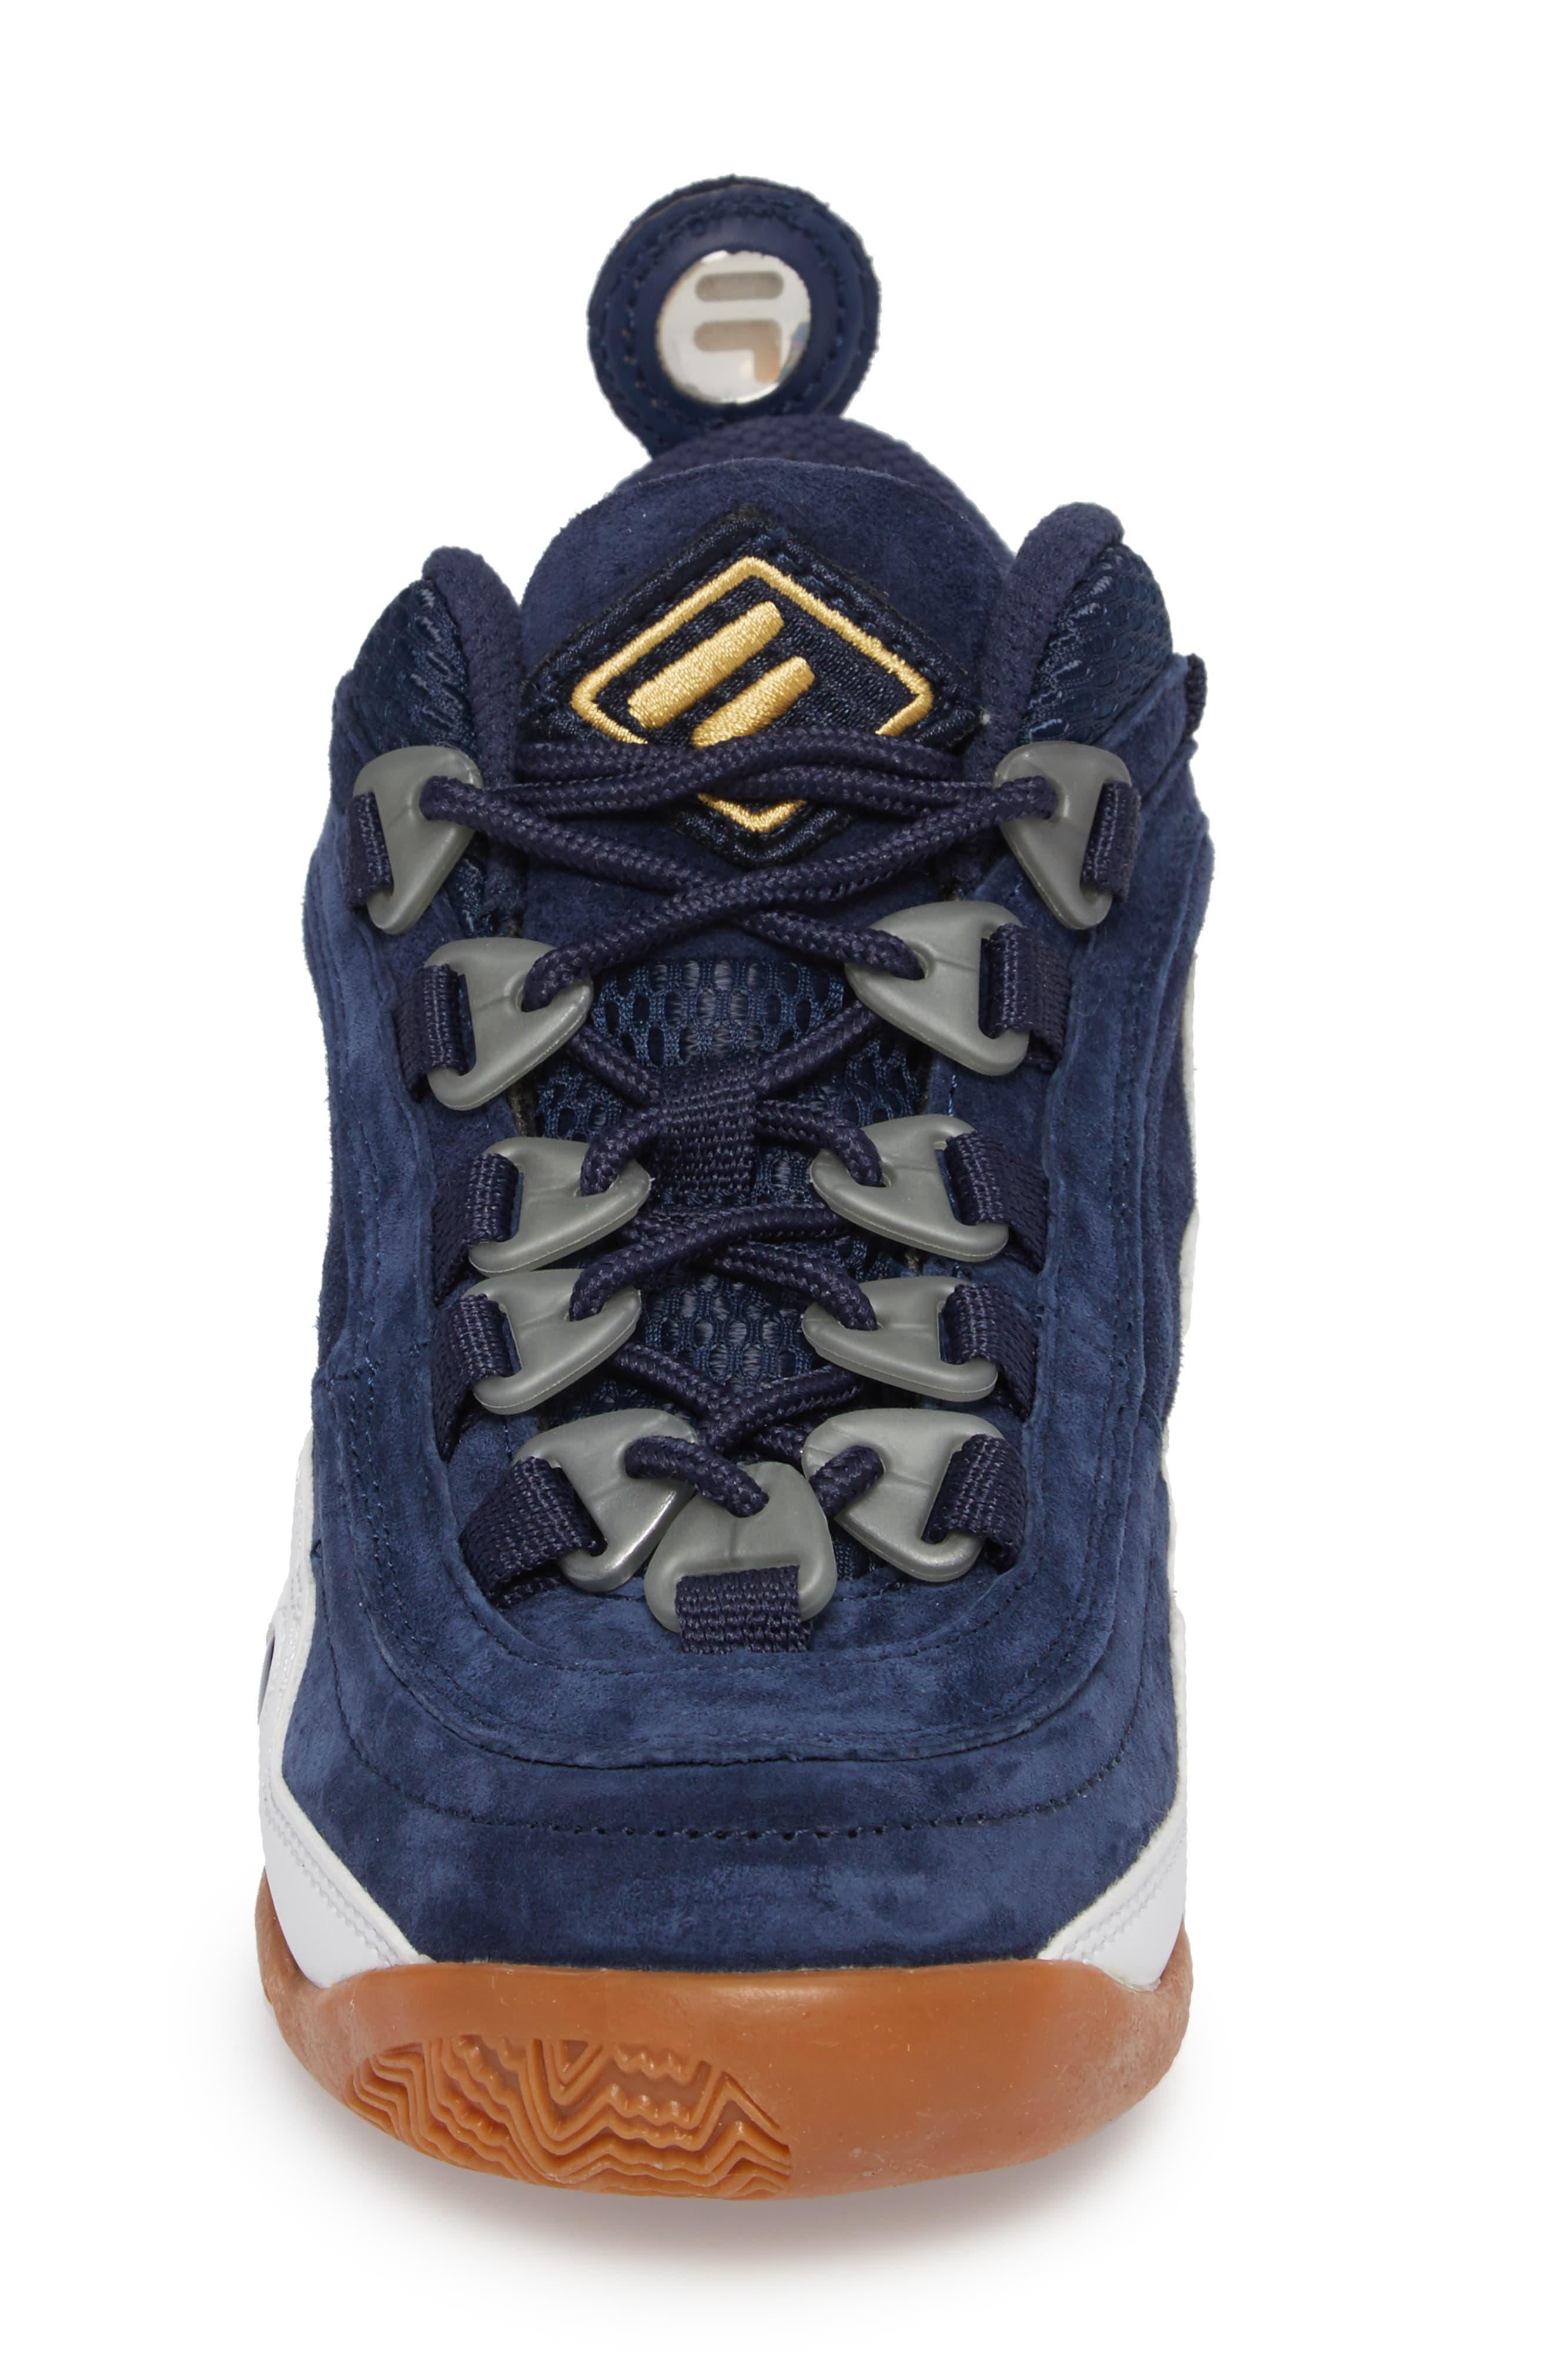 FILA, Bubbles Mid Top Sneaker Boot, Alternate thumbnail 4, color, NAVY/ GOLD/ WHITE